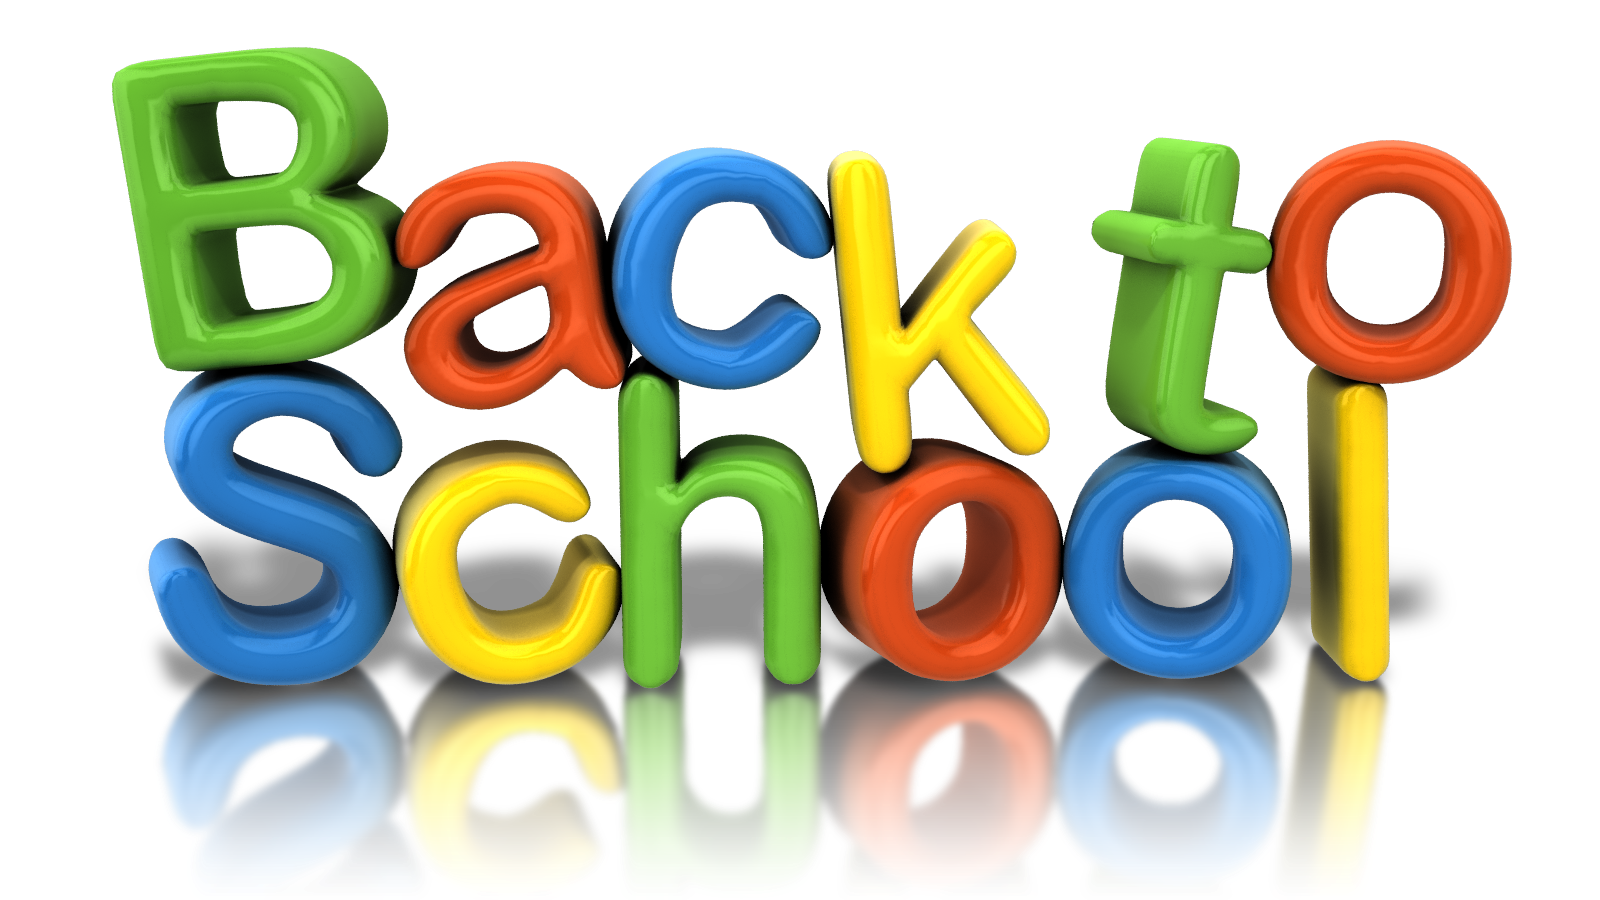 First day of school clipart jpg transparent Santa Maria High School jpg transparent